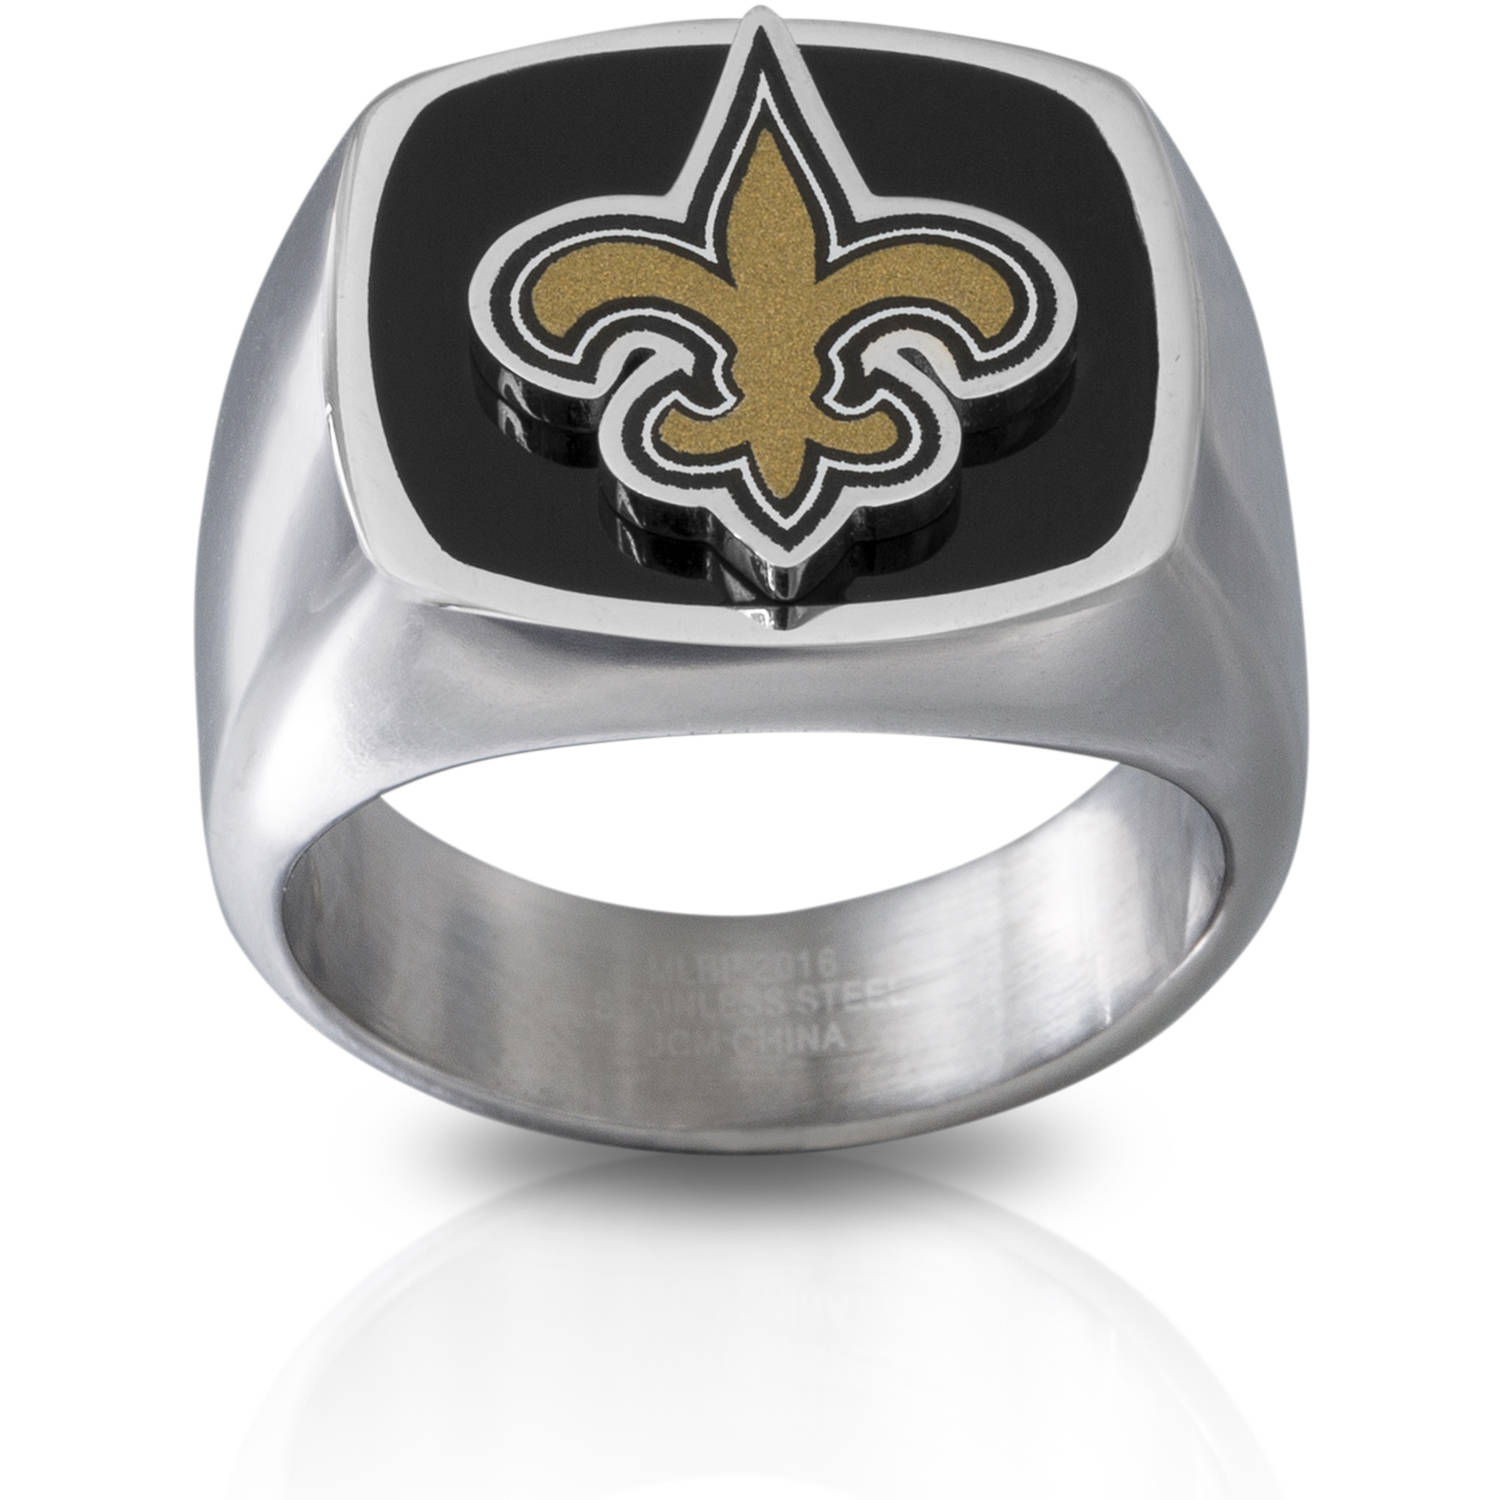 rings ring bowl new championship saints world xliv nfl products orleans super